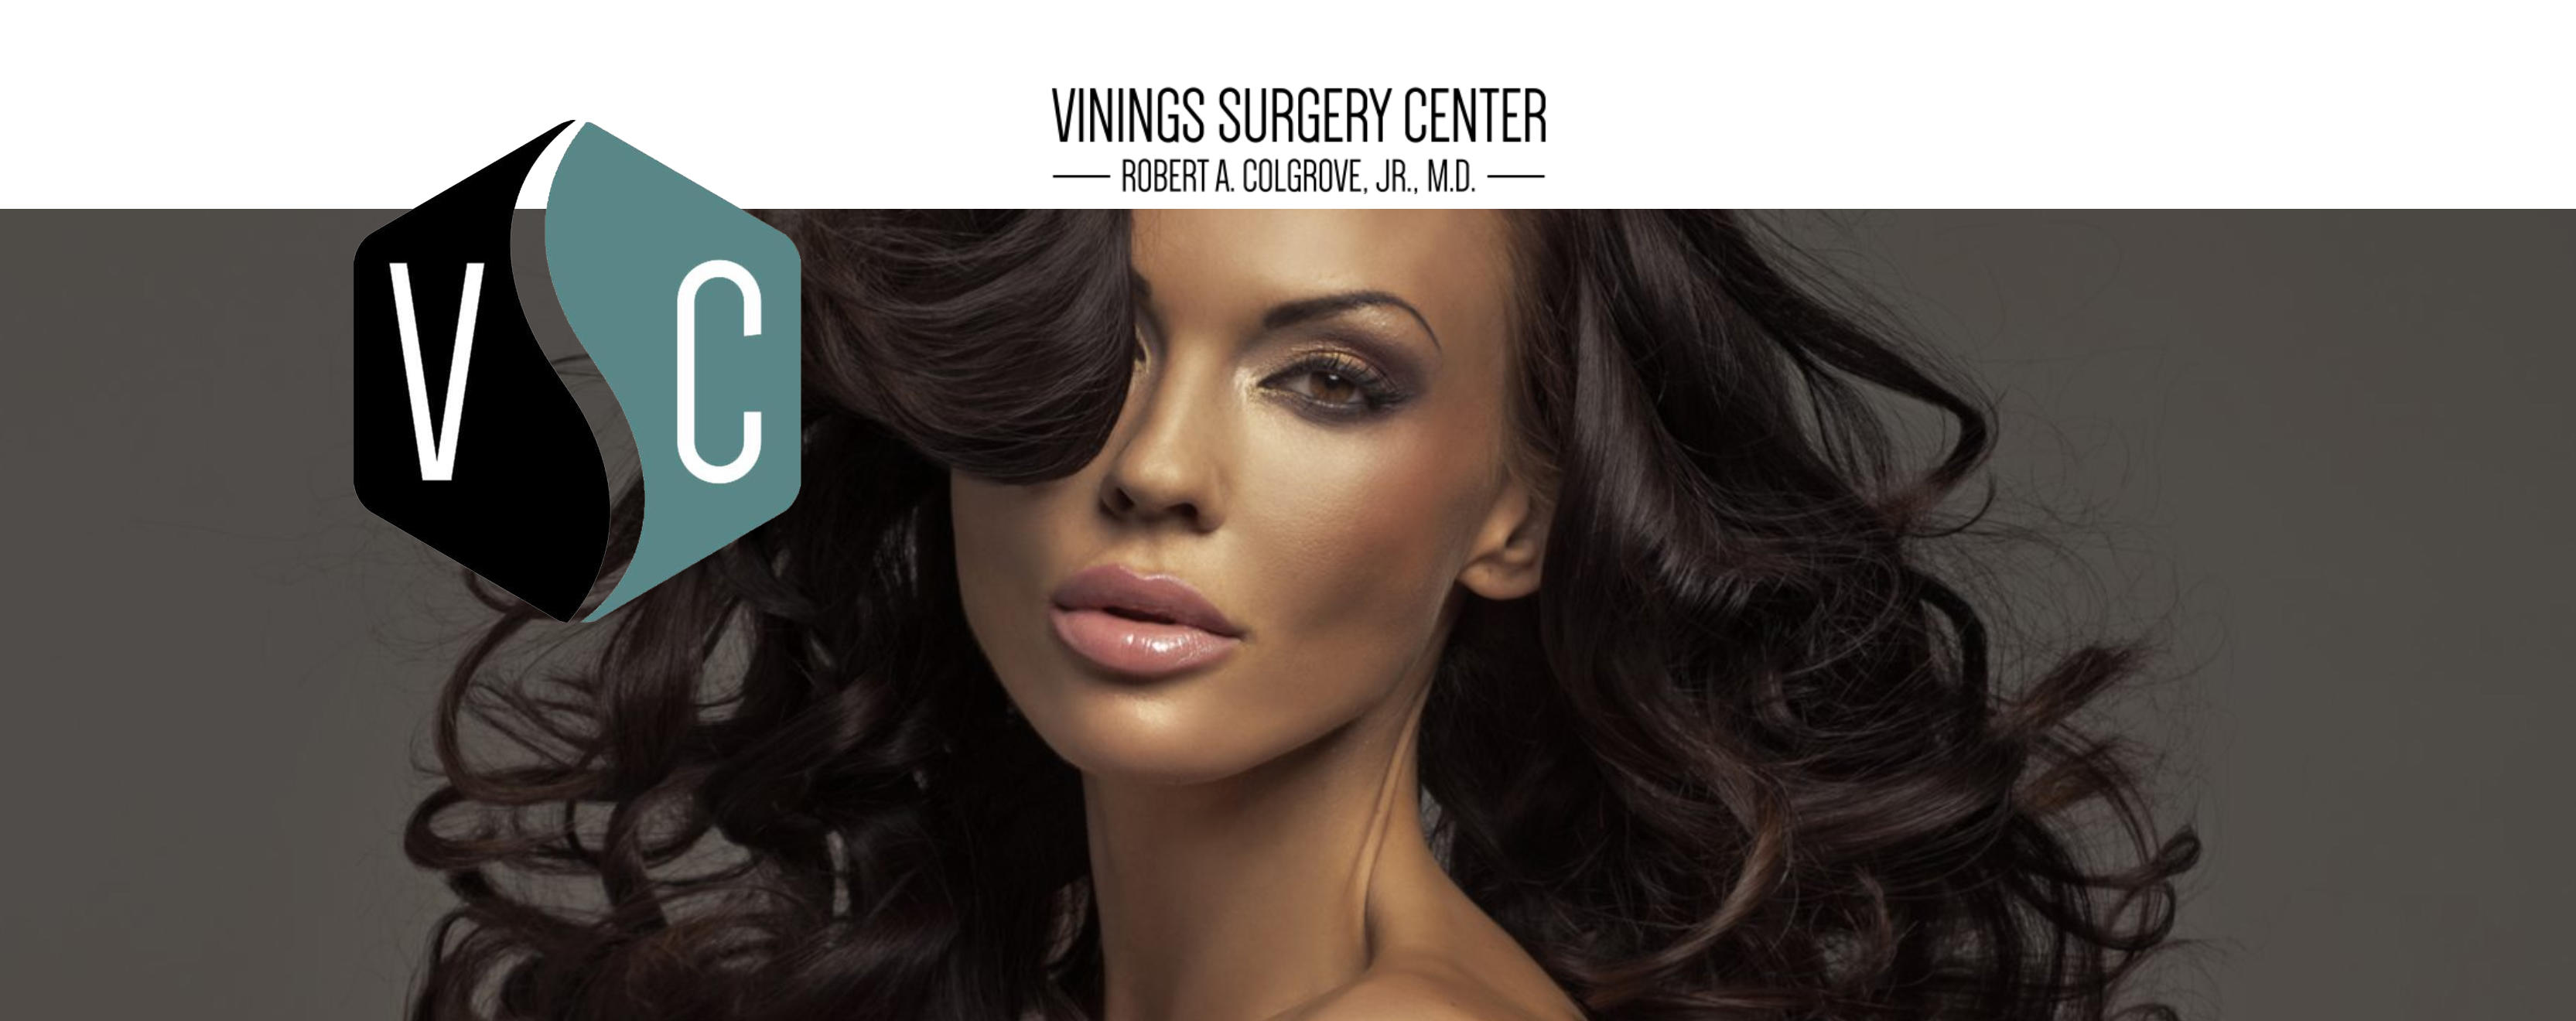 Vinings Surgery Center in Atlanta, GA by Board Certified Plastic Surgeon Robert A. Colgrove, Jr., M. Robert A. Colgrove, Jr., M.D. Atlanta (770)955-9000